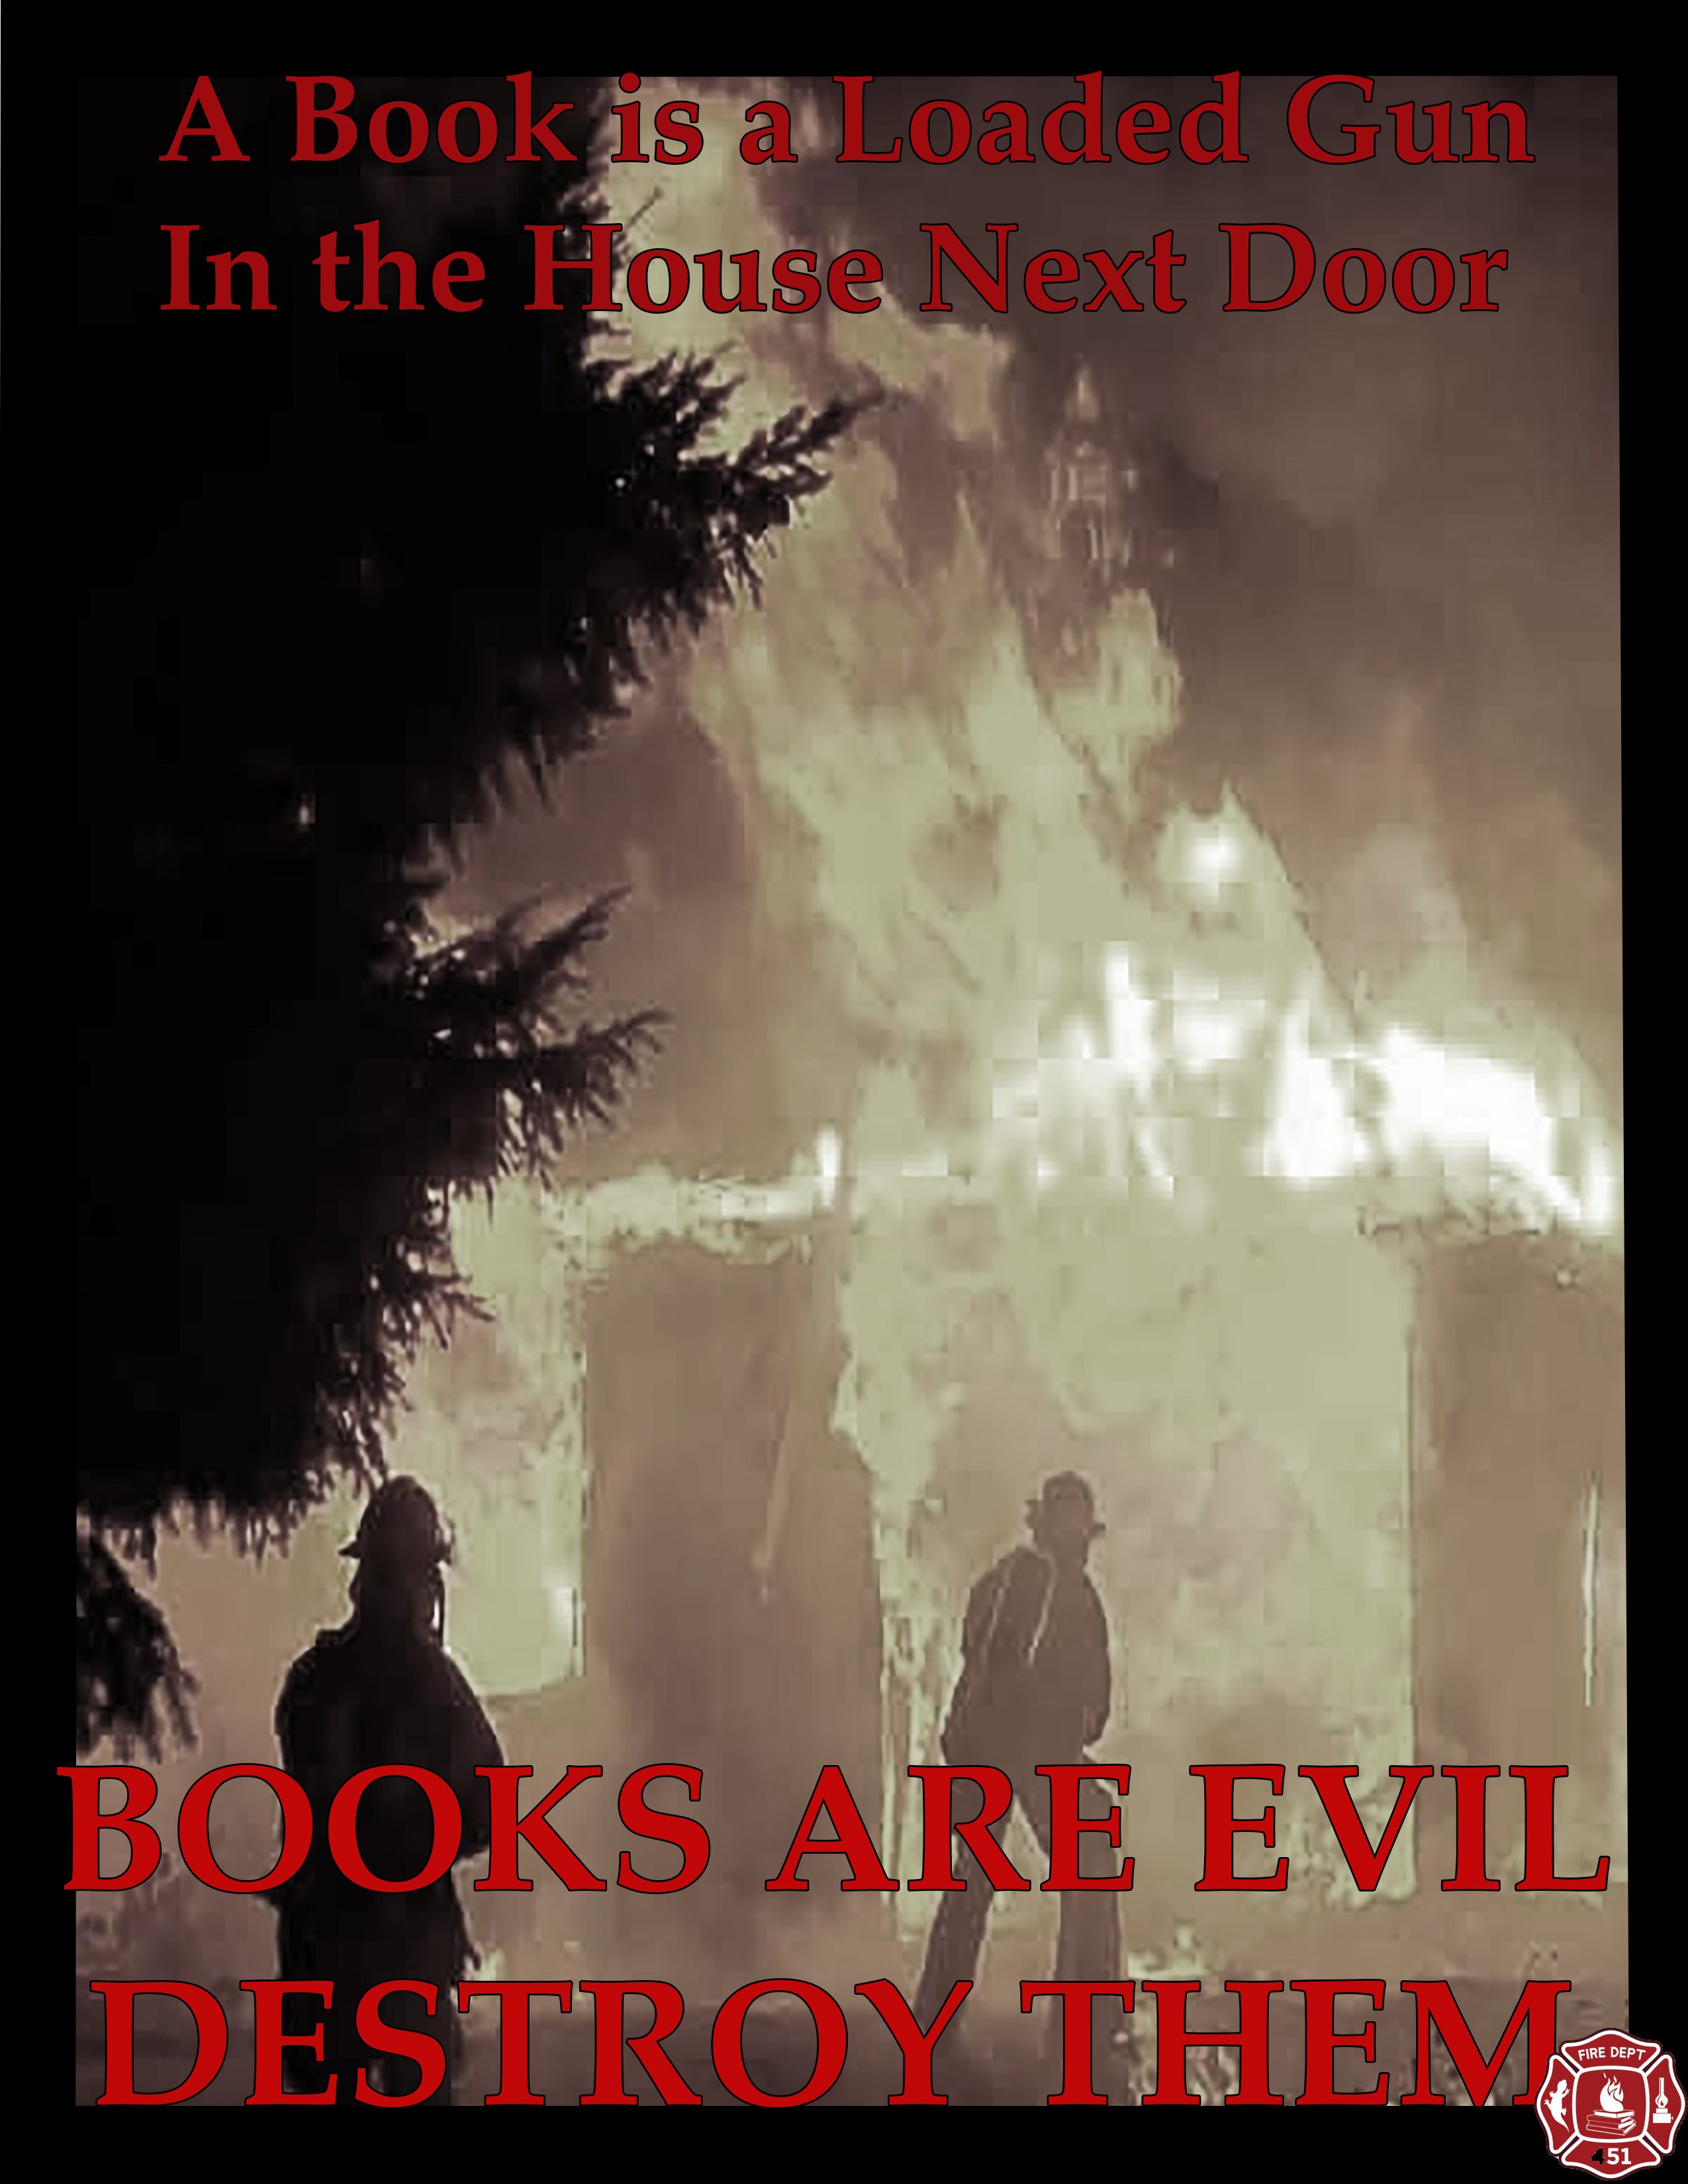 Fahrenheit 451 Quotes About Burning Books With Page Numbers: Book Burning Fahrenheit 451 Quotes. QuotesGram